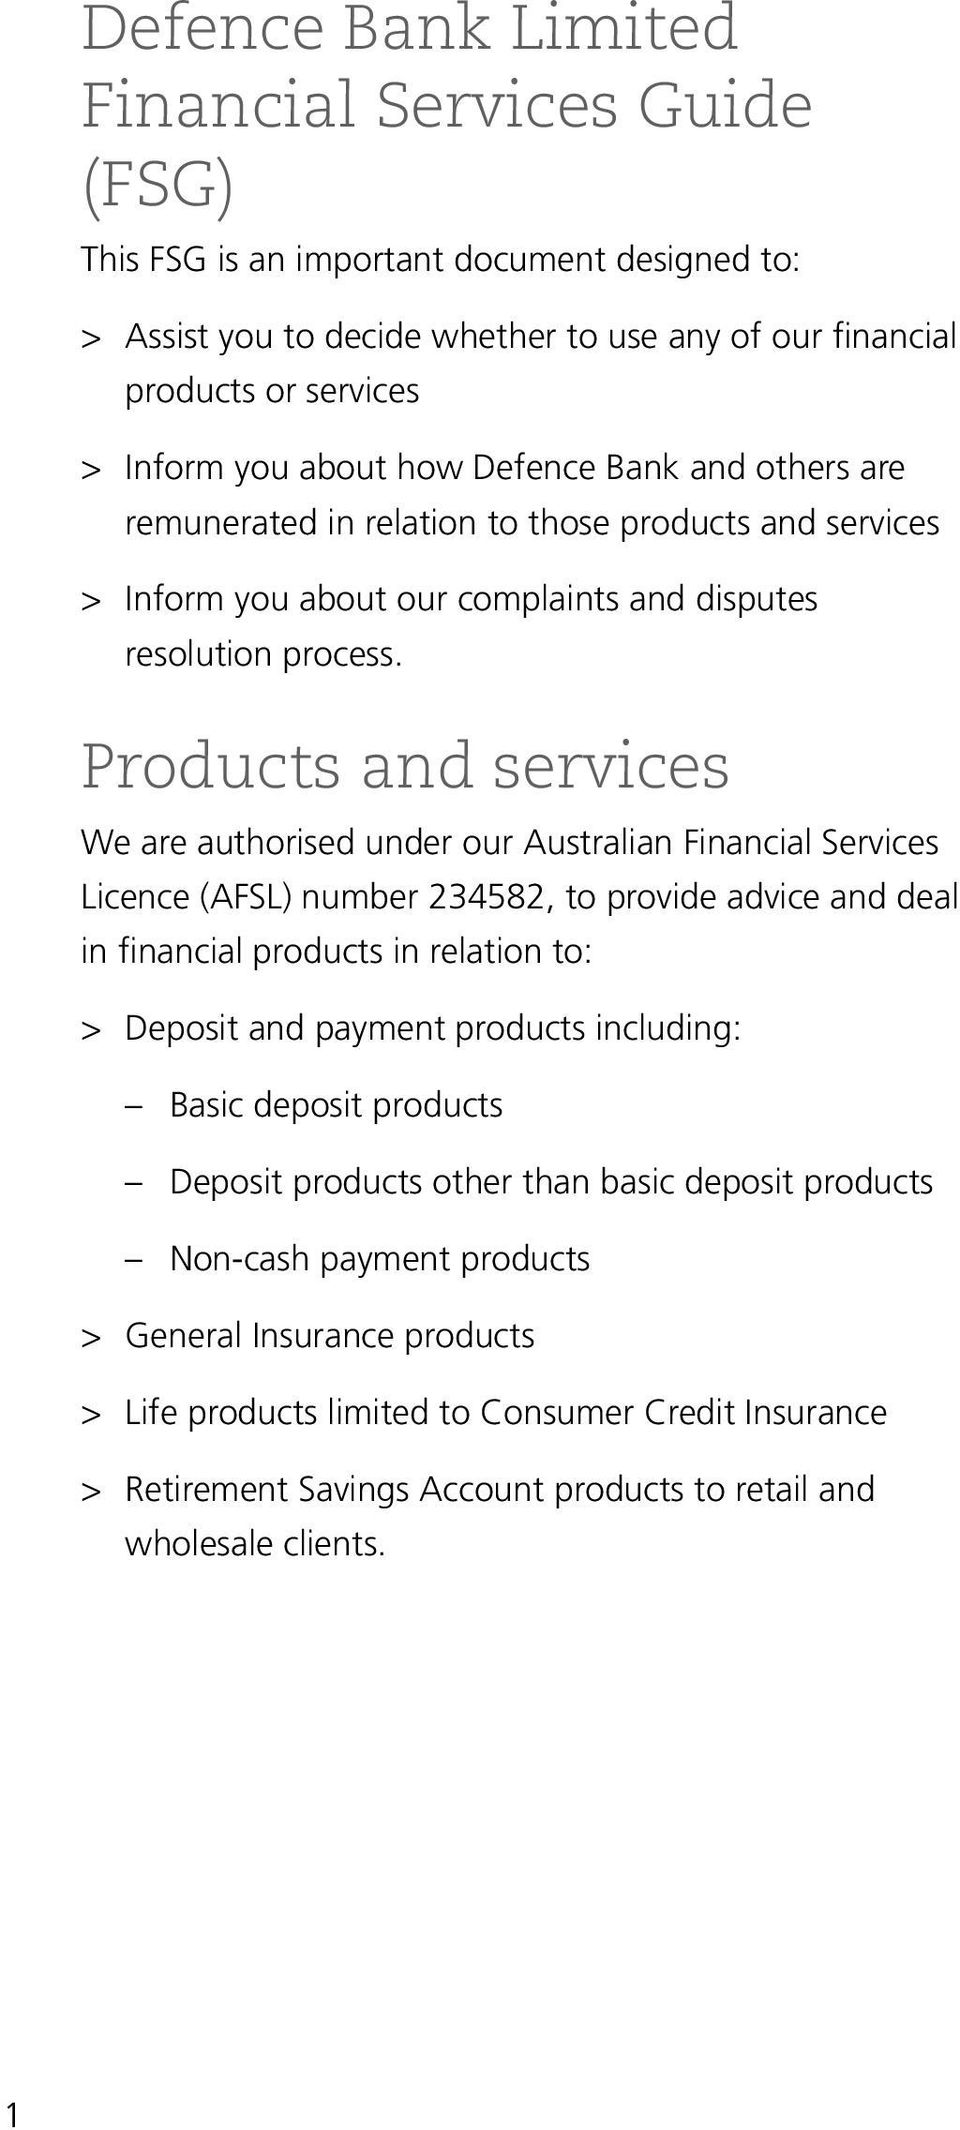 Products and services We are authorised under our Australian Financial Services Licence (AFSL) number 234582, to provide advice and deal in financial products in relation to: > > Deposit and payment